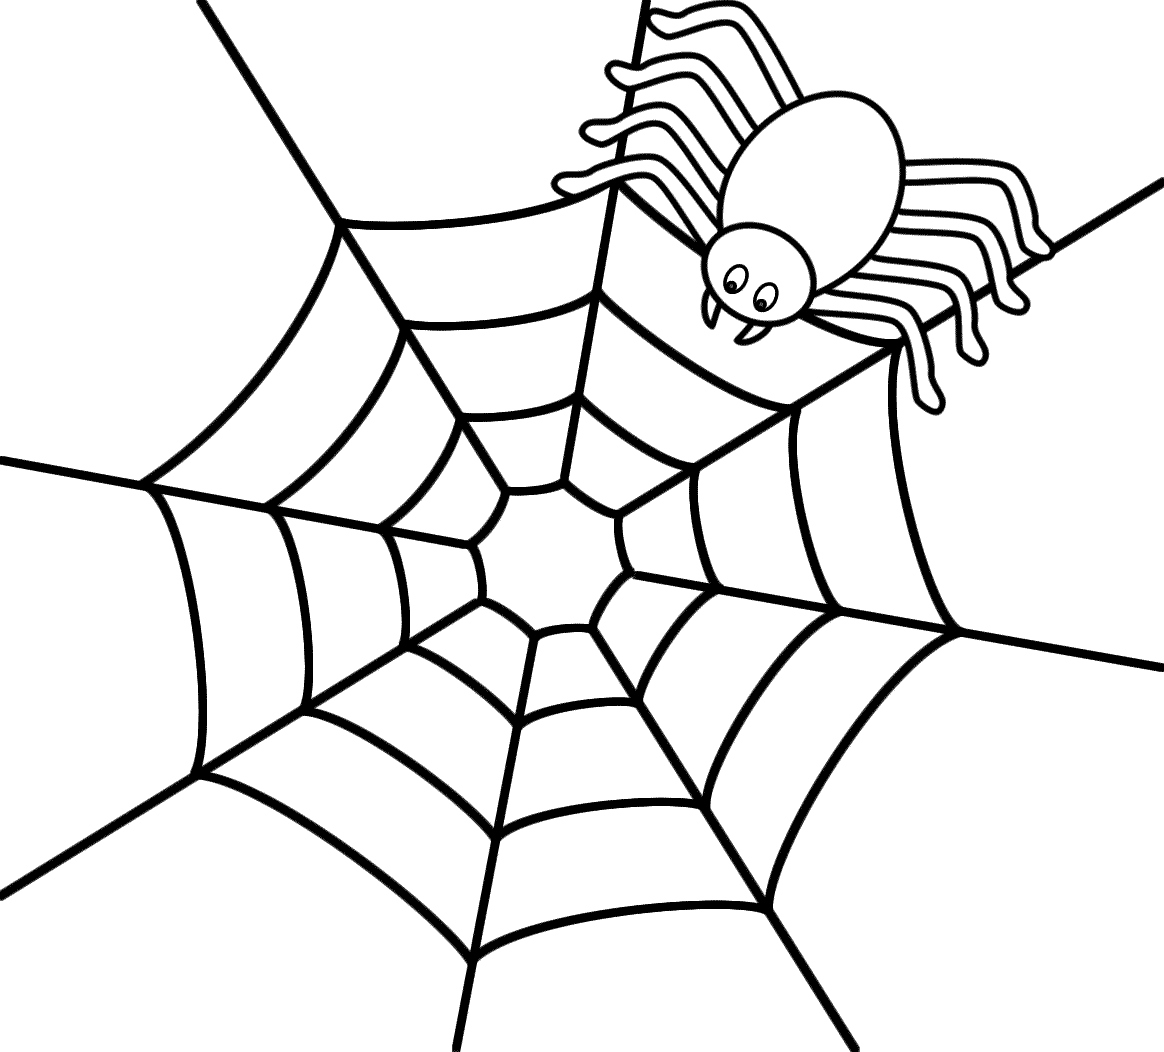 1164x1052 Charlotte's Web Coloring Pages Best Of Charlotte S Web Vhs